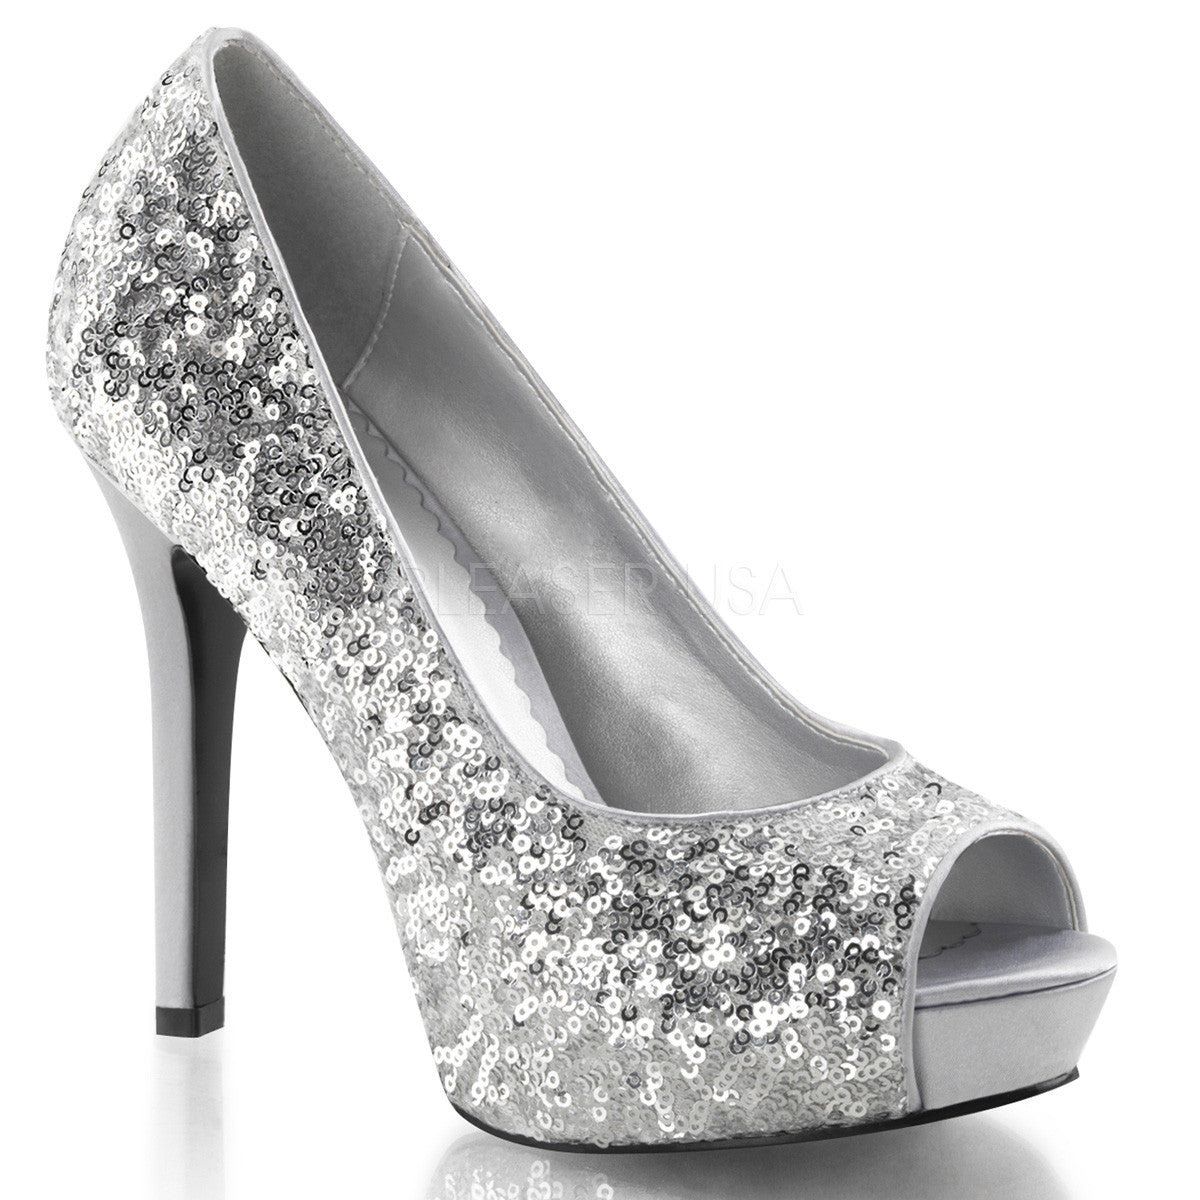 FABULICIOUS LUMINA-27SQ Silver Sequins Open Toe Pumps - Shoecup.com